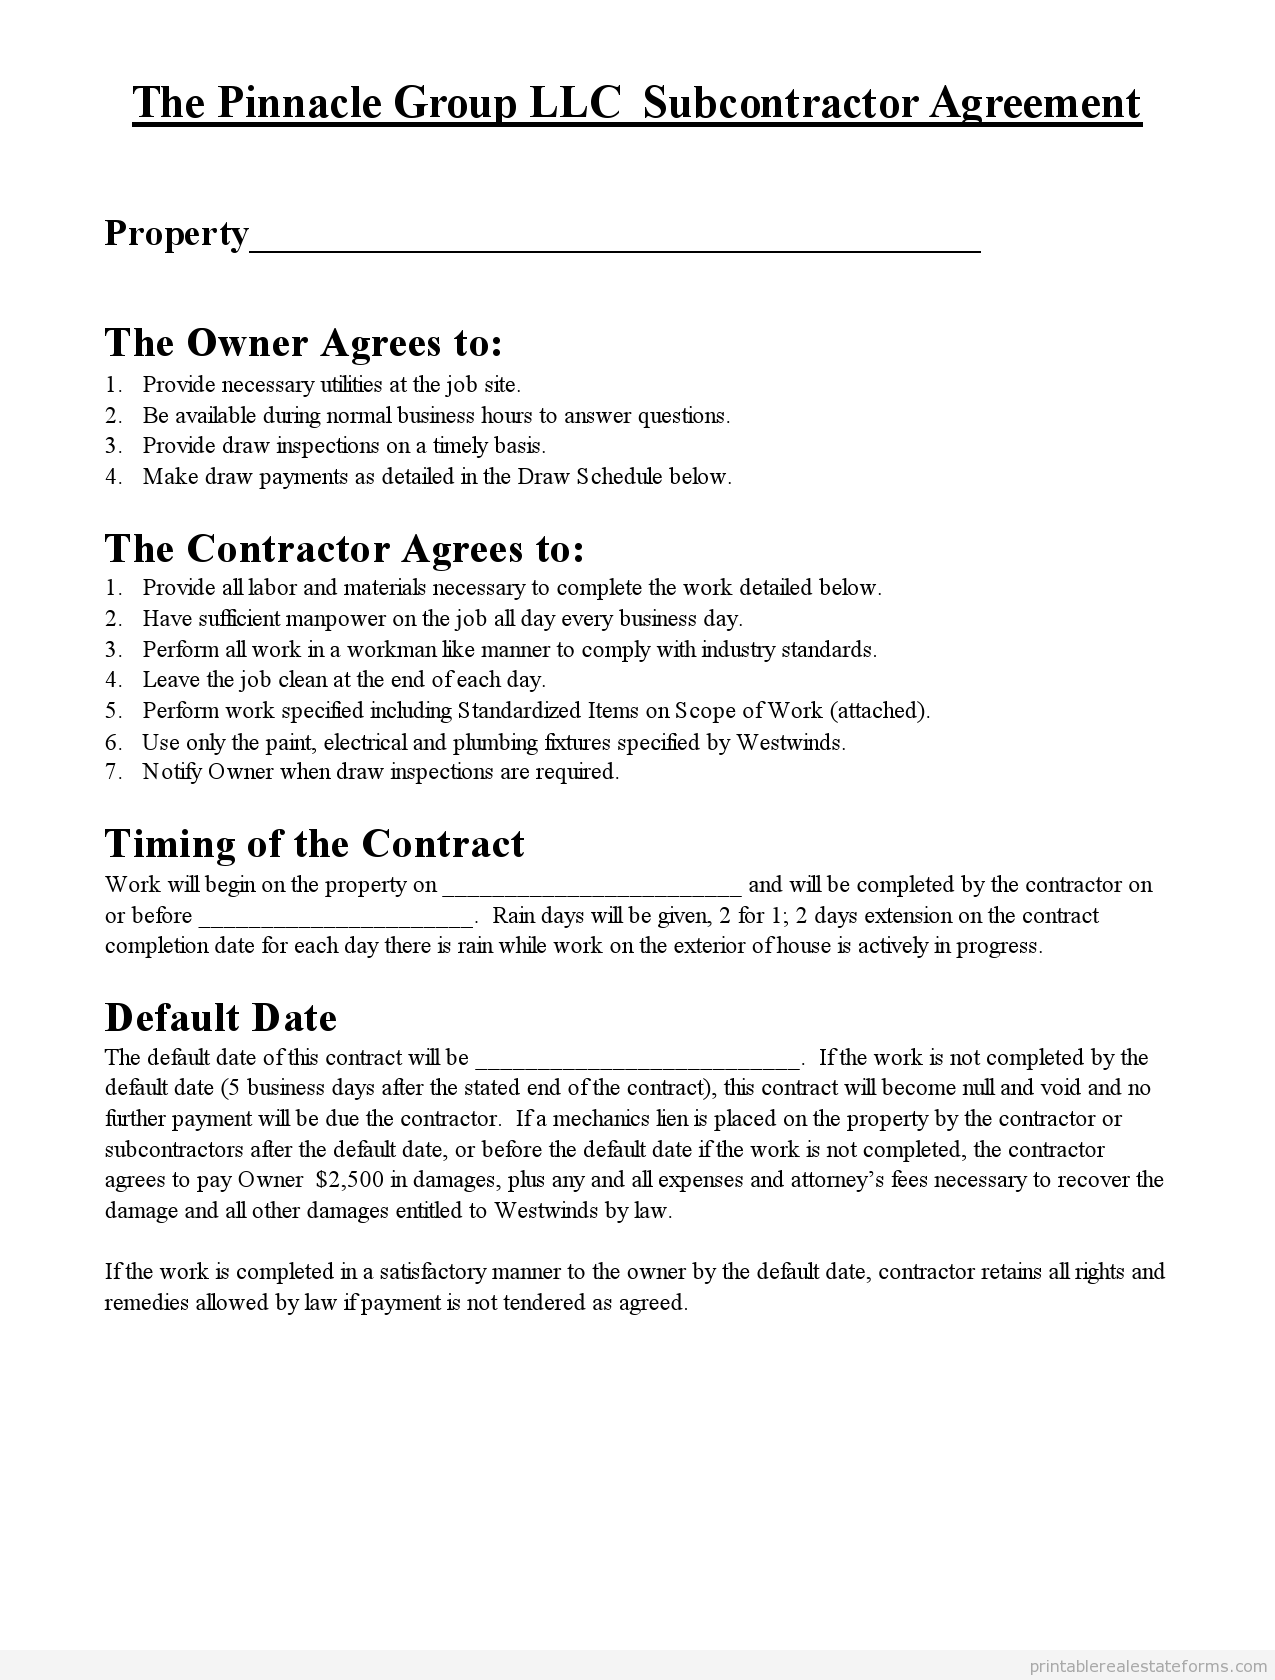 Free Printable subcontractor agreement Form | Printable Real Estate ...